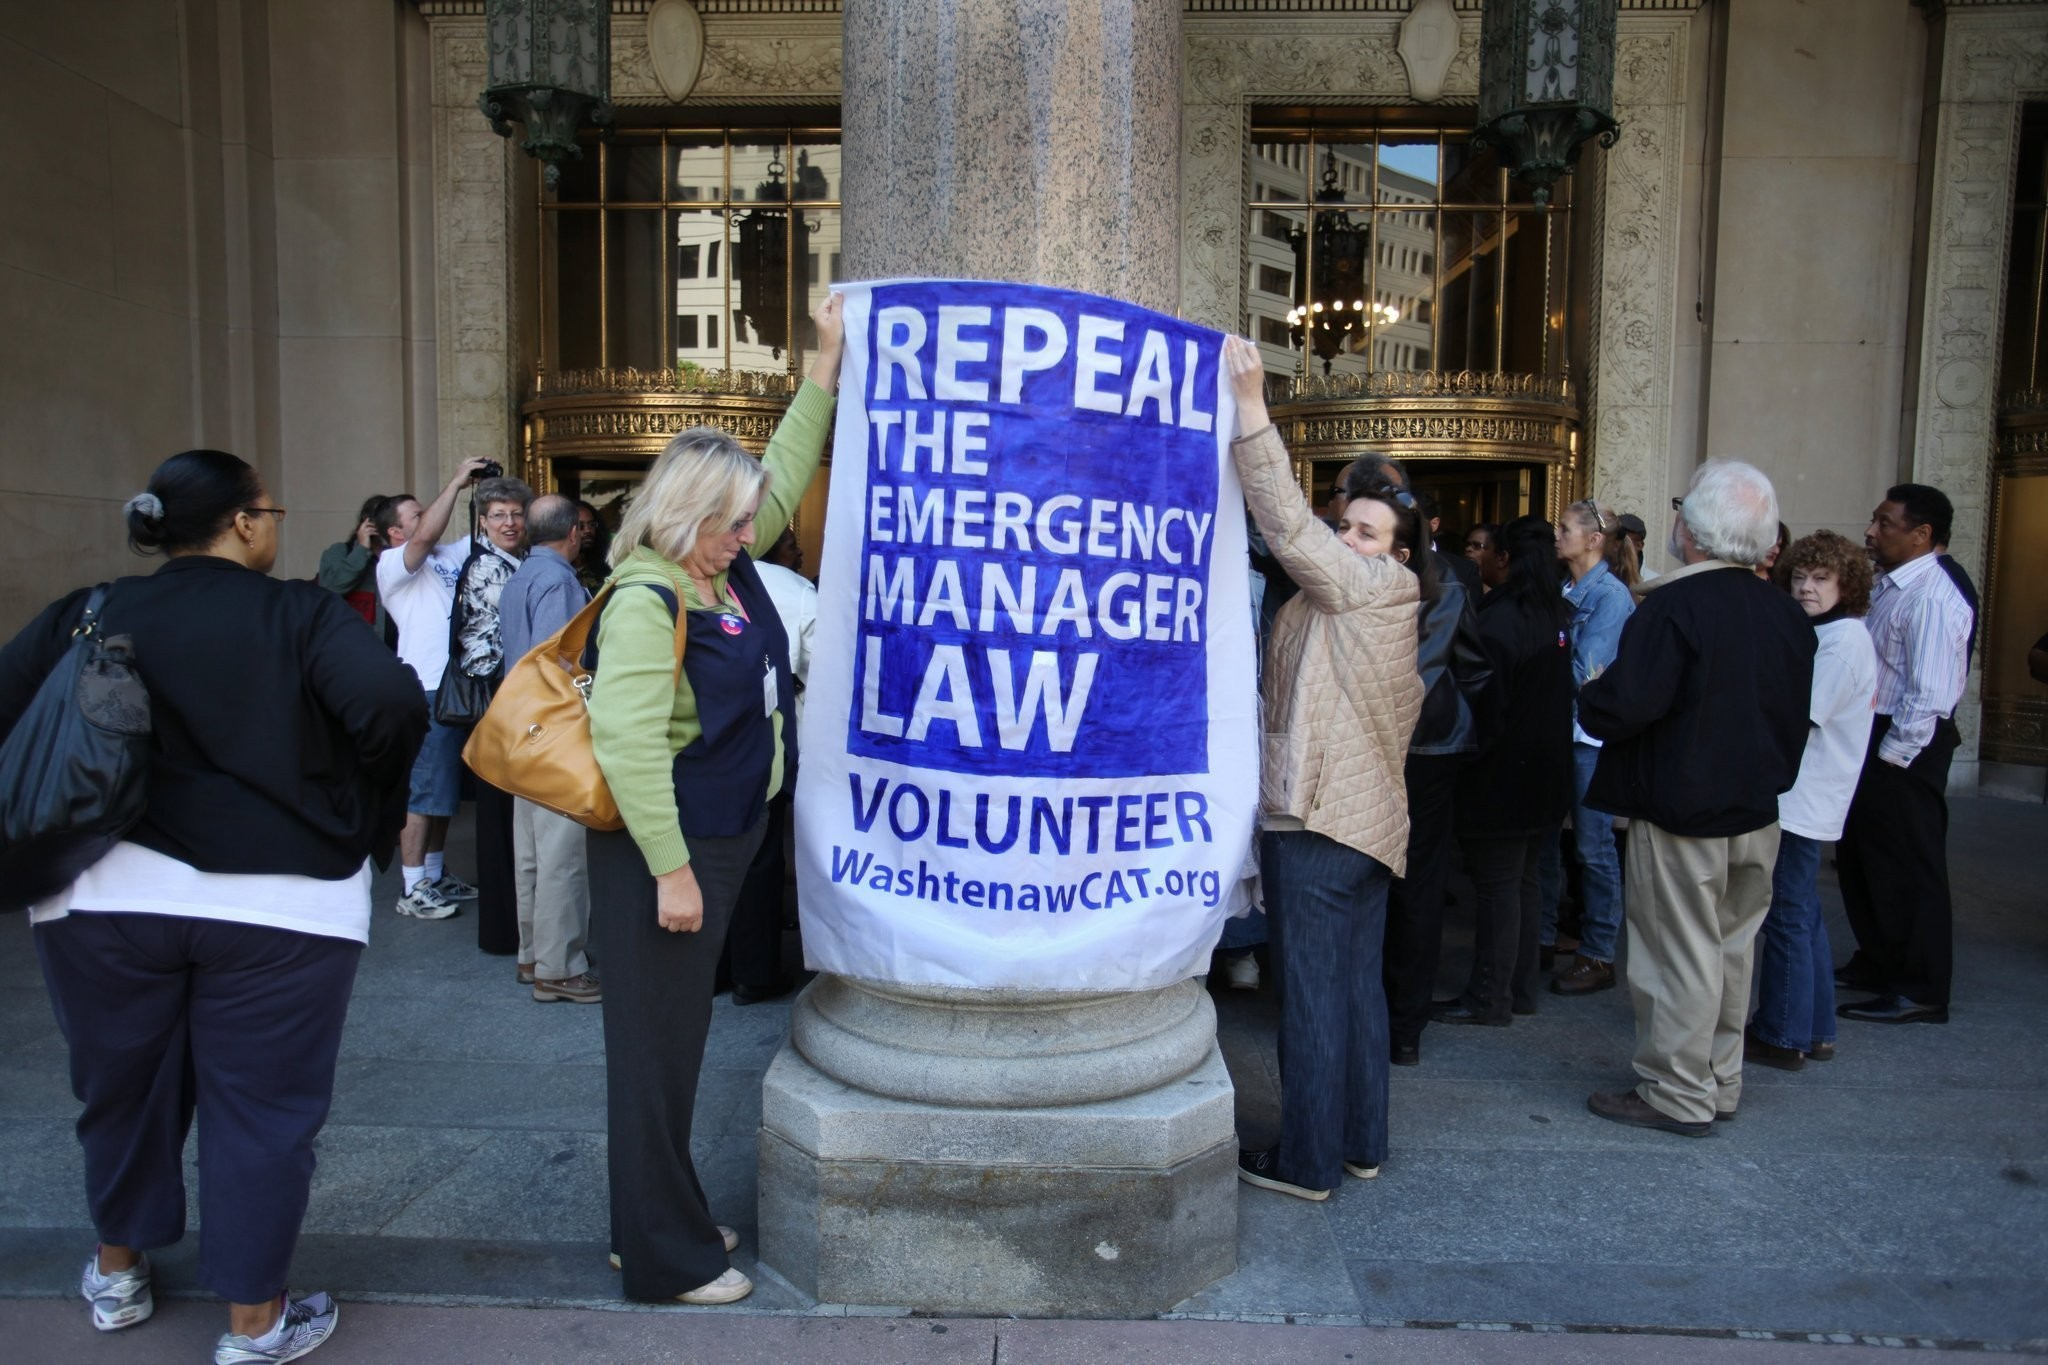 repeal law